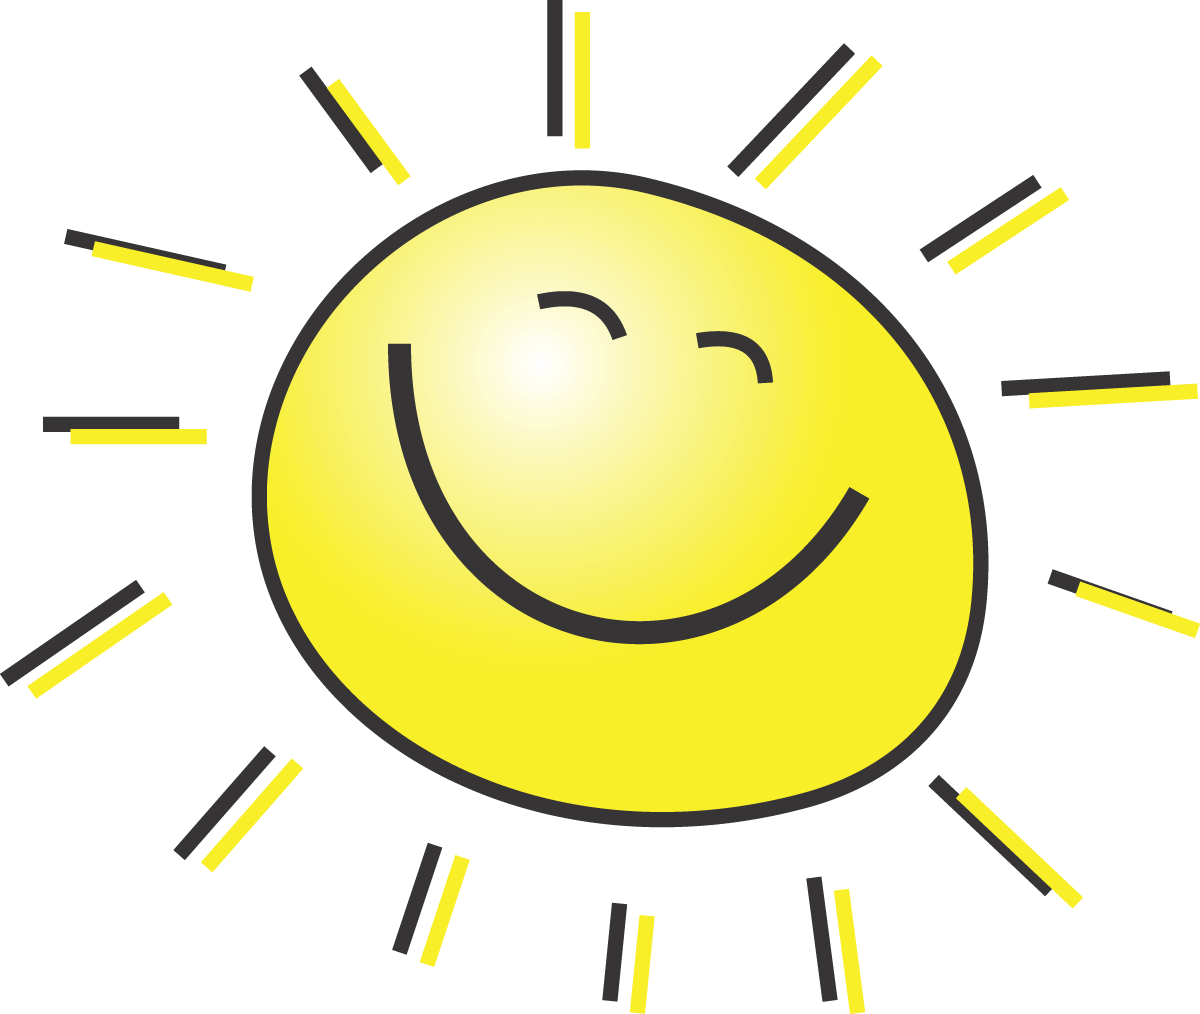 external image 5-Free-Summer-Clipart-Illustration-Of-A-Happy-Smiling-Sun.png